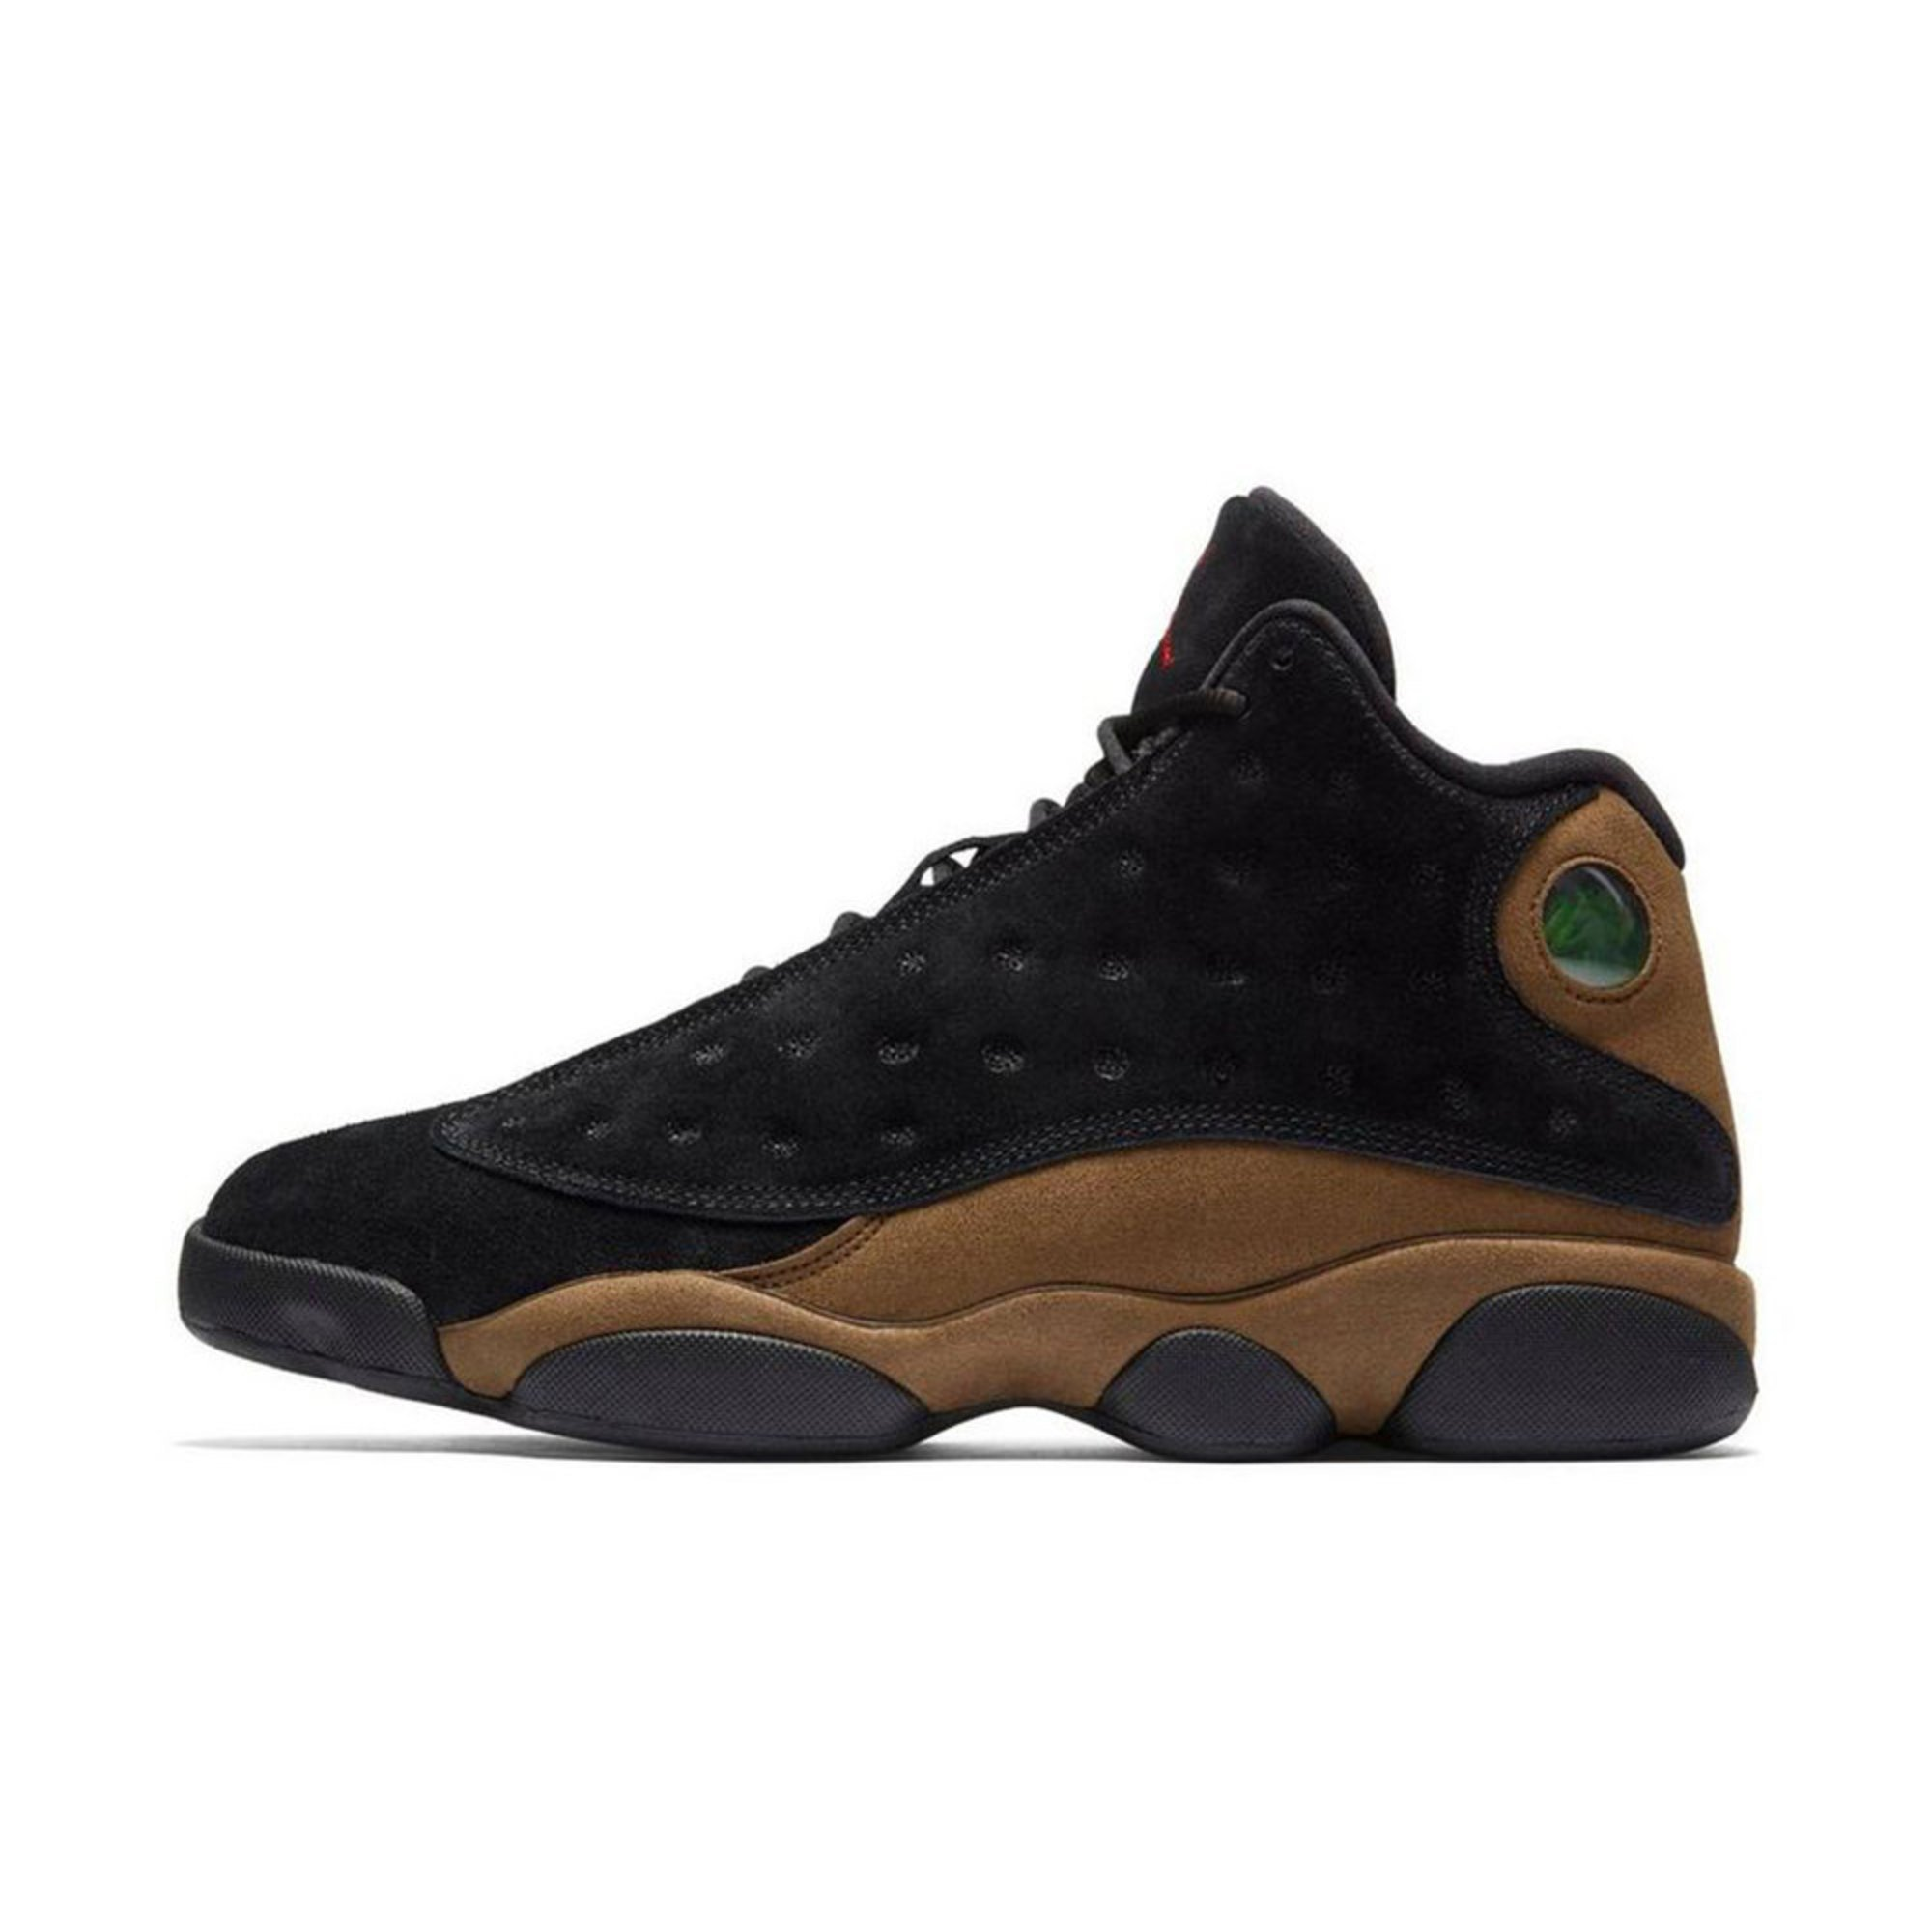 Jordan Jordan Air Jordan 13 Retro Mens Basketball Shoe  Black  True Red   Light Olive